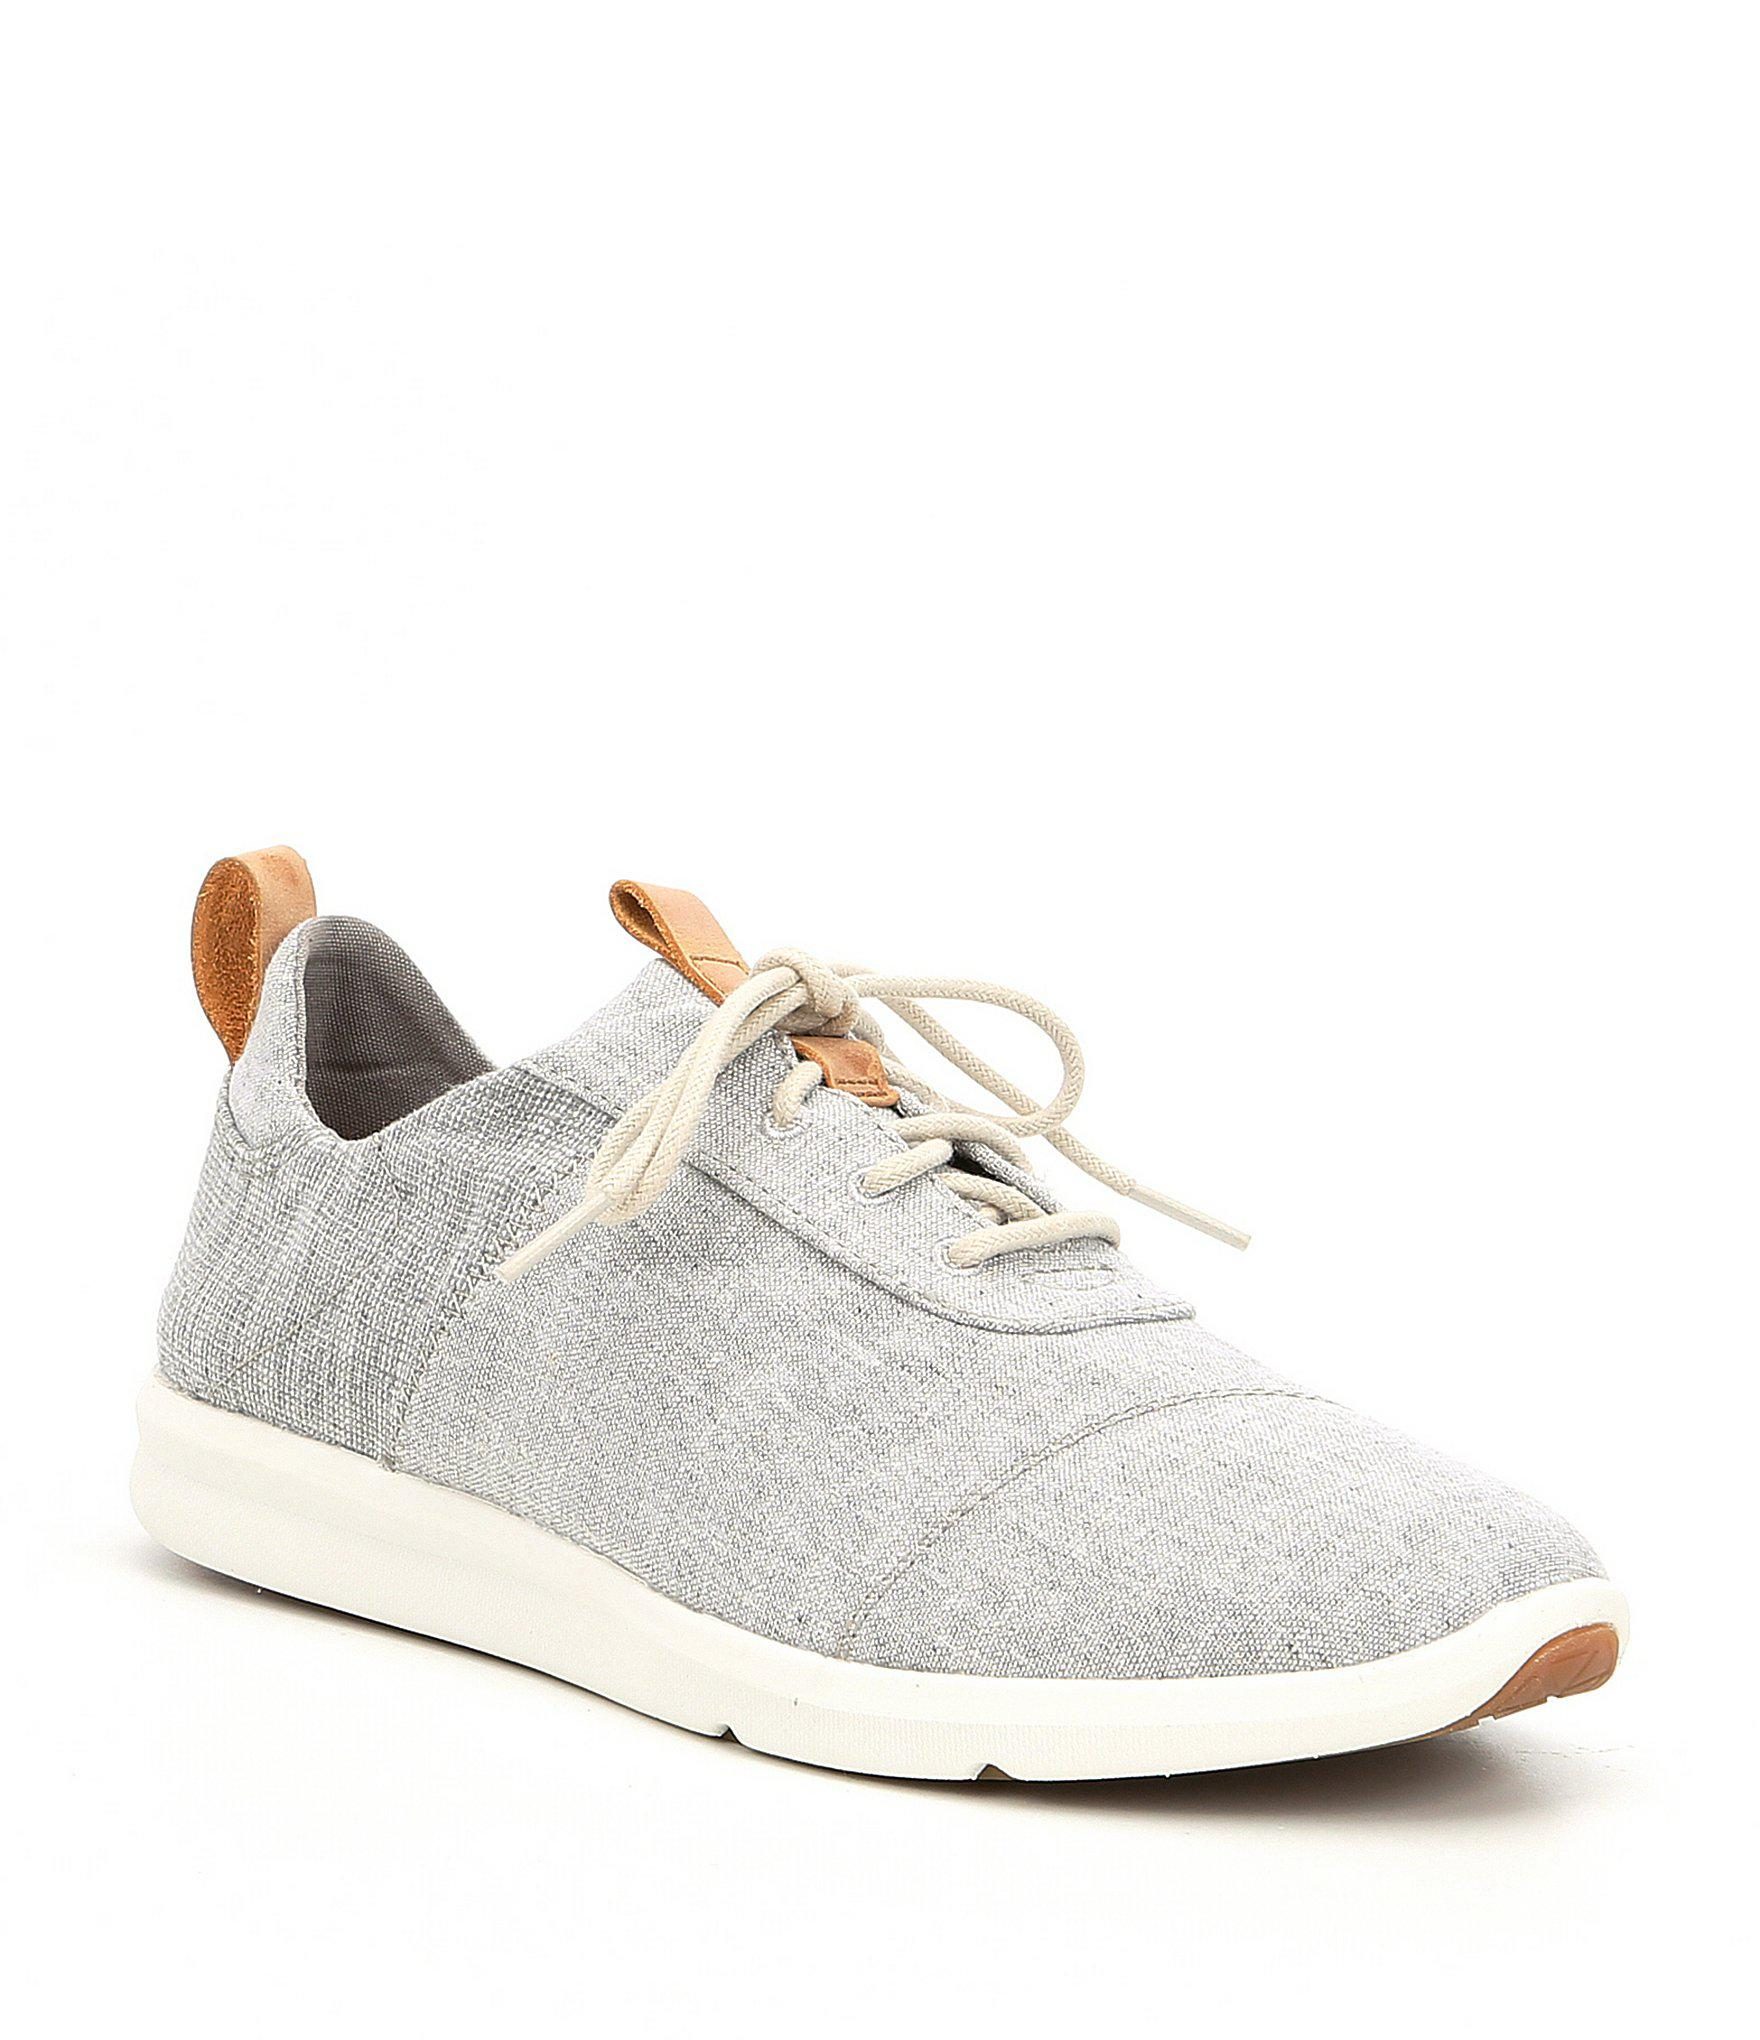 33a7c10824a9 Lyst - TOMS Women s Cabrillo Chambray Sneakers in Gray